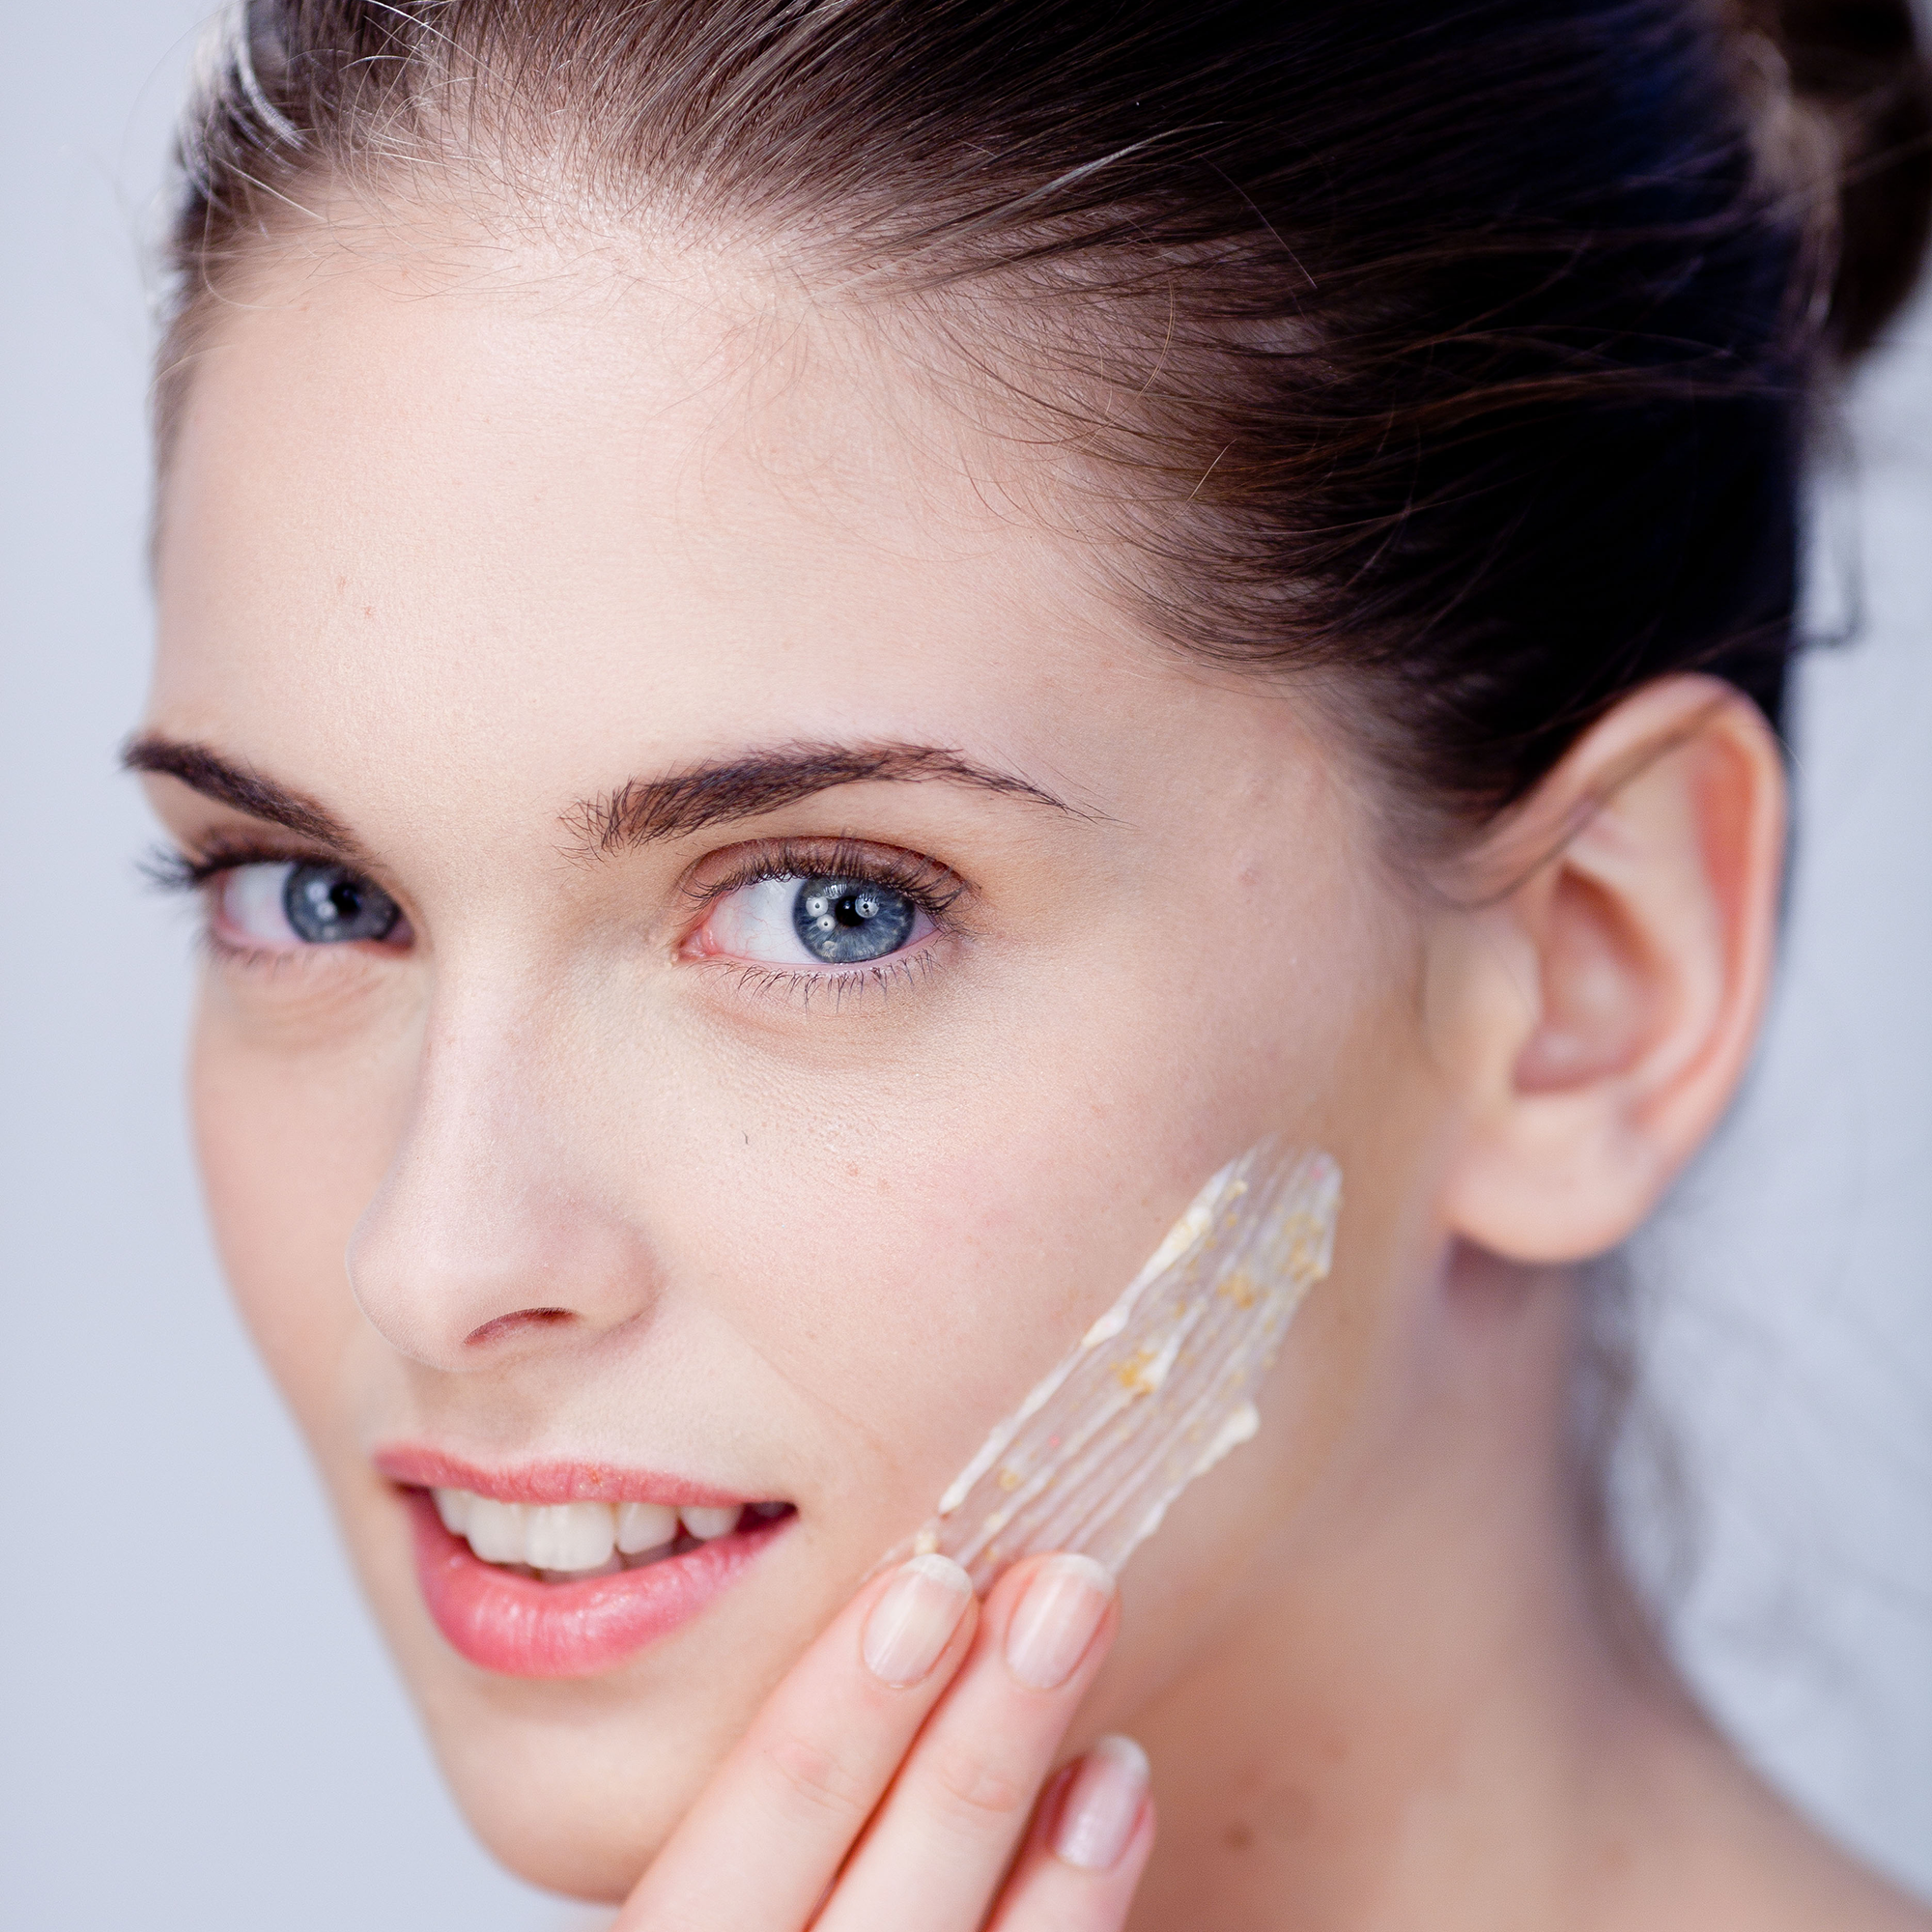 Facial exfoliators for every skin type